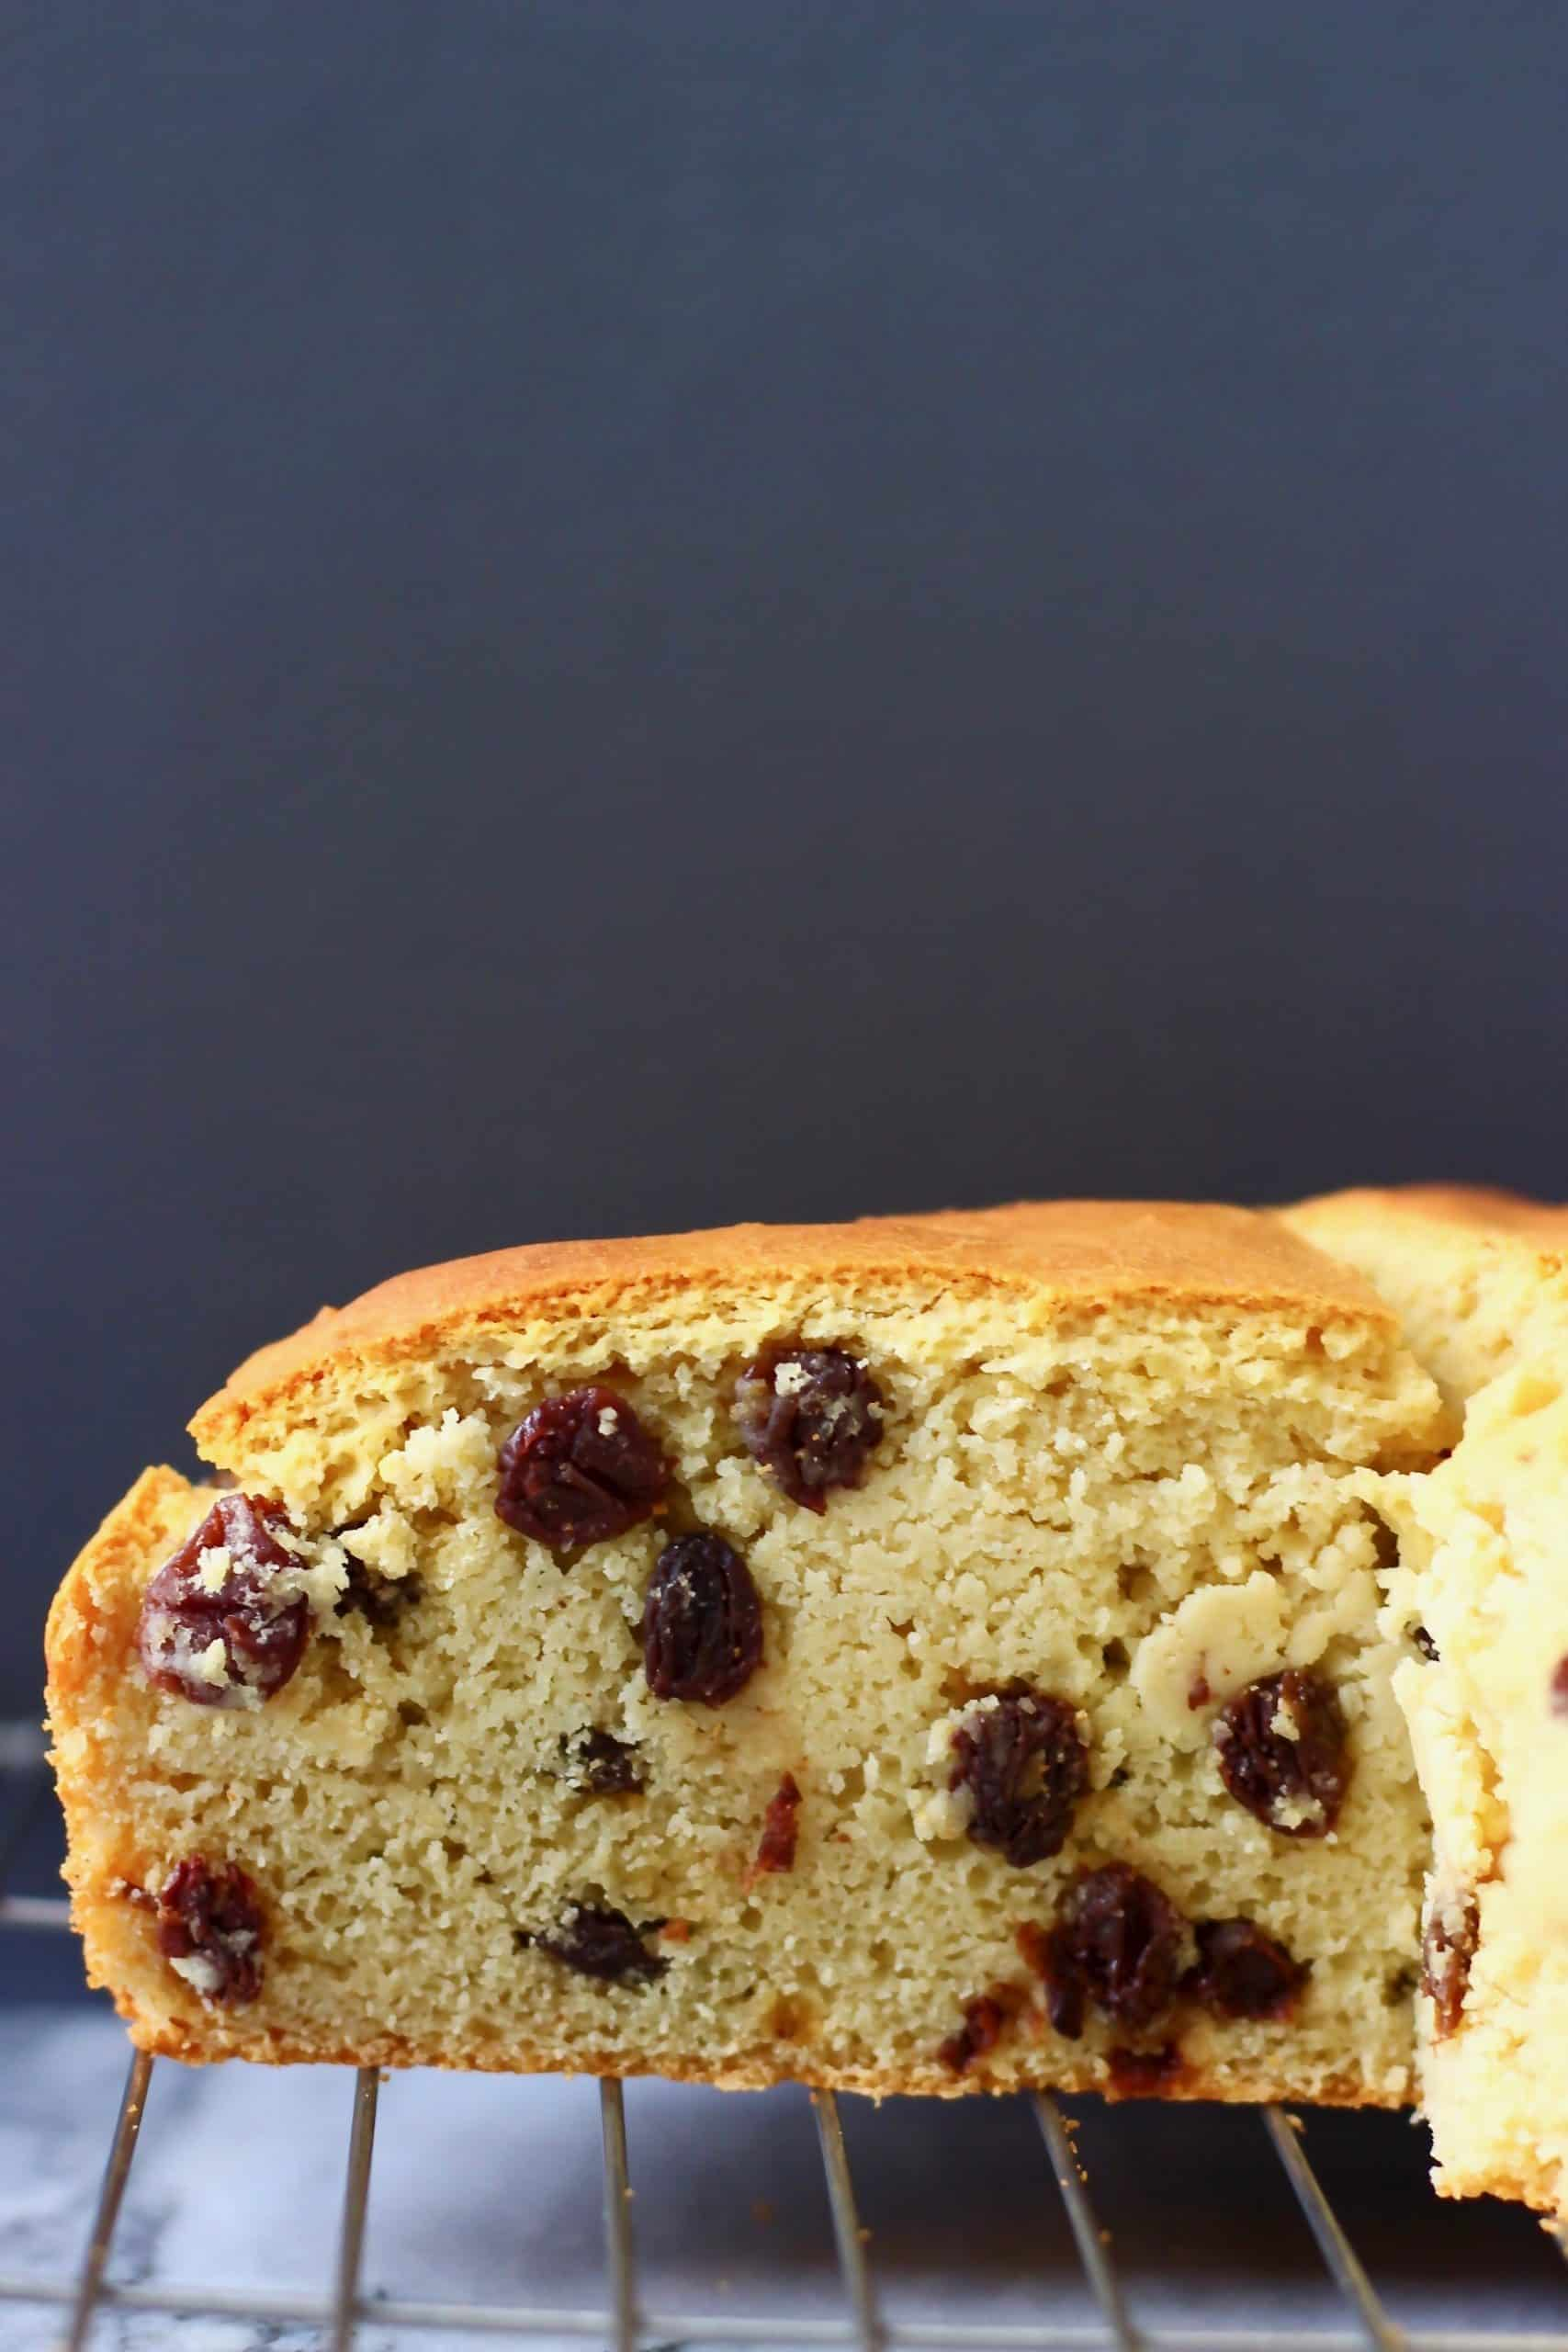 A sliced round loaf of soda bread with raisins